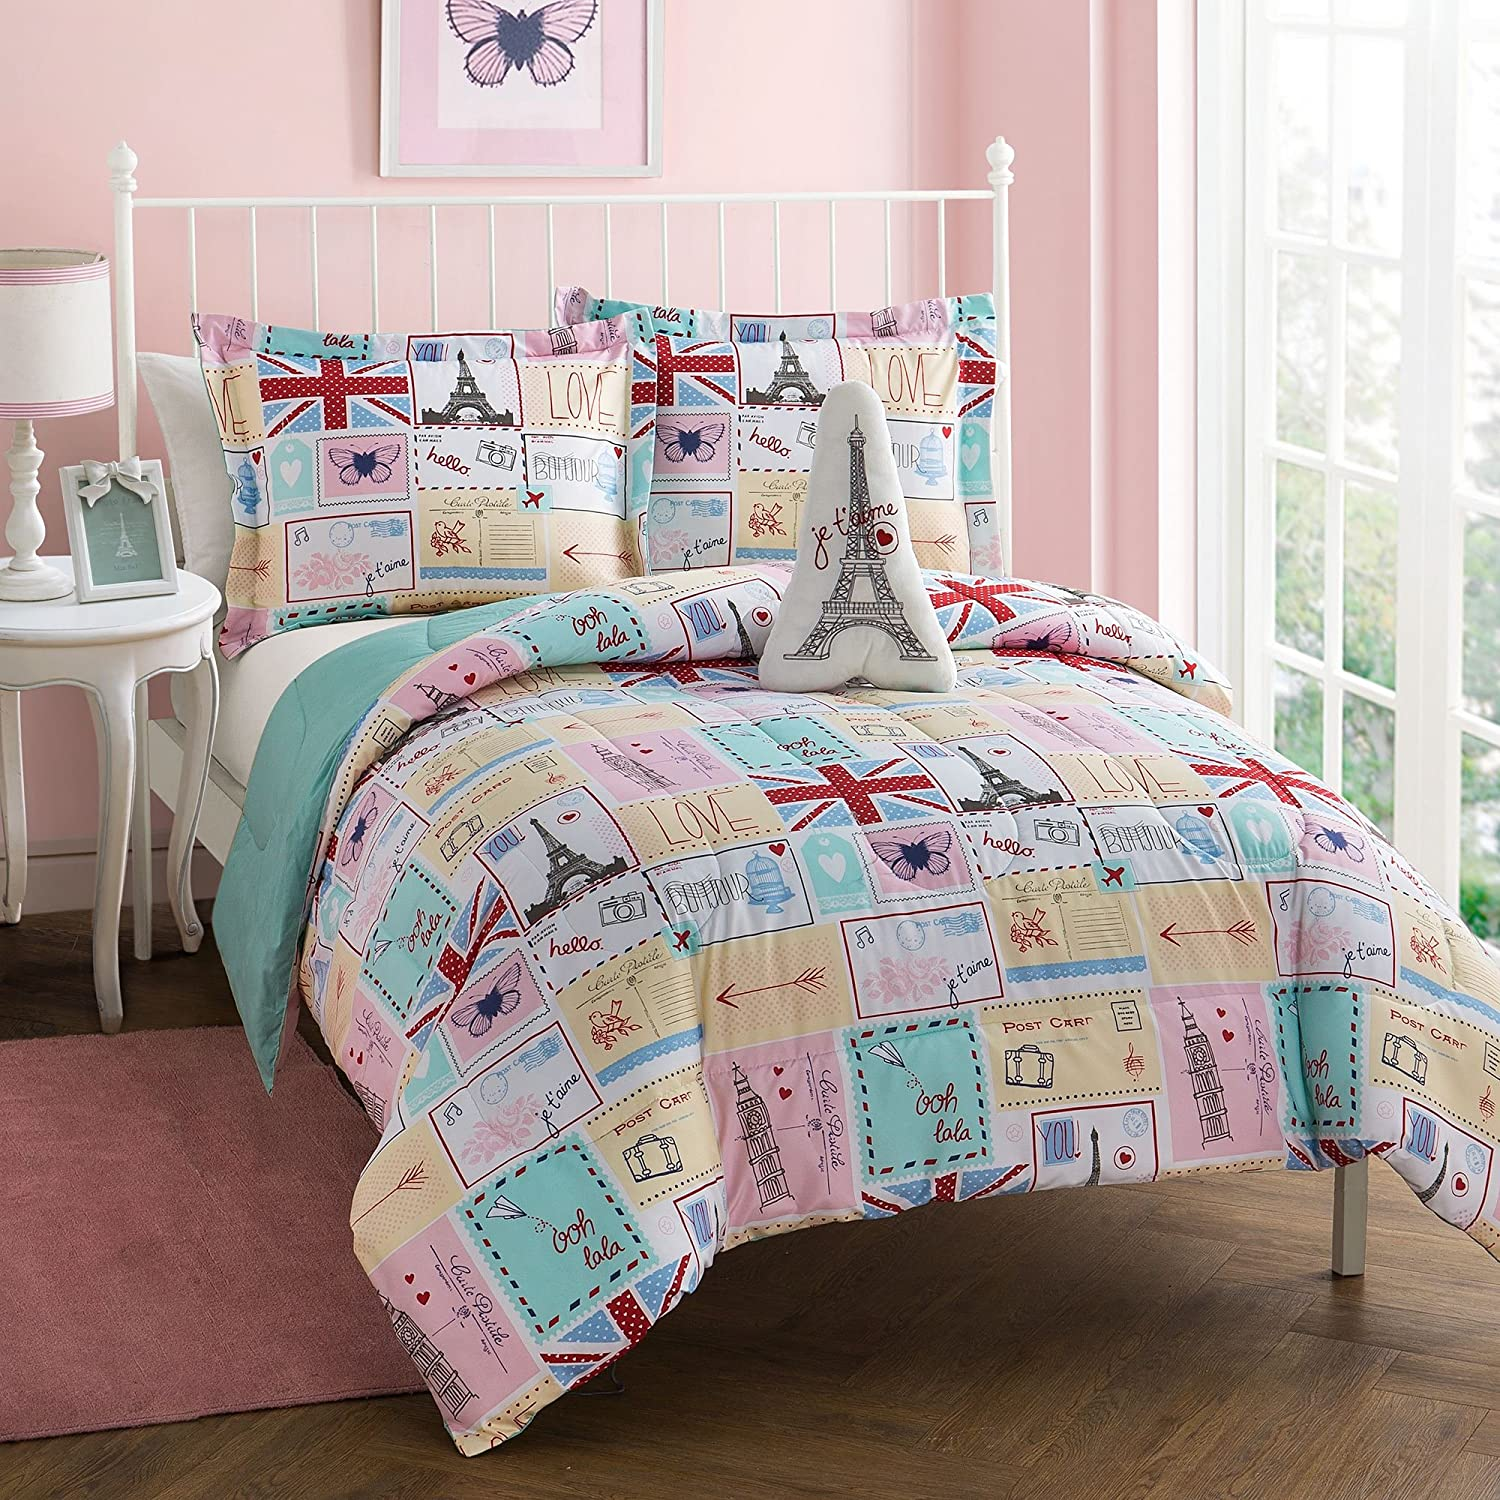 BonJour 3-Piece Comforter Set French Country Style, Featuring Postcards, Butterflies, and Hearts Aqua with Pops of Red and Navy, Pink, Twin, Full